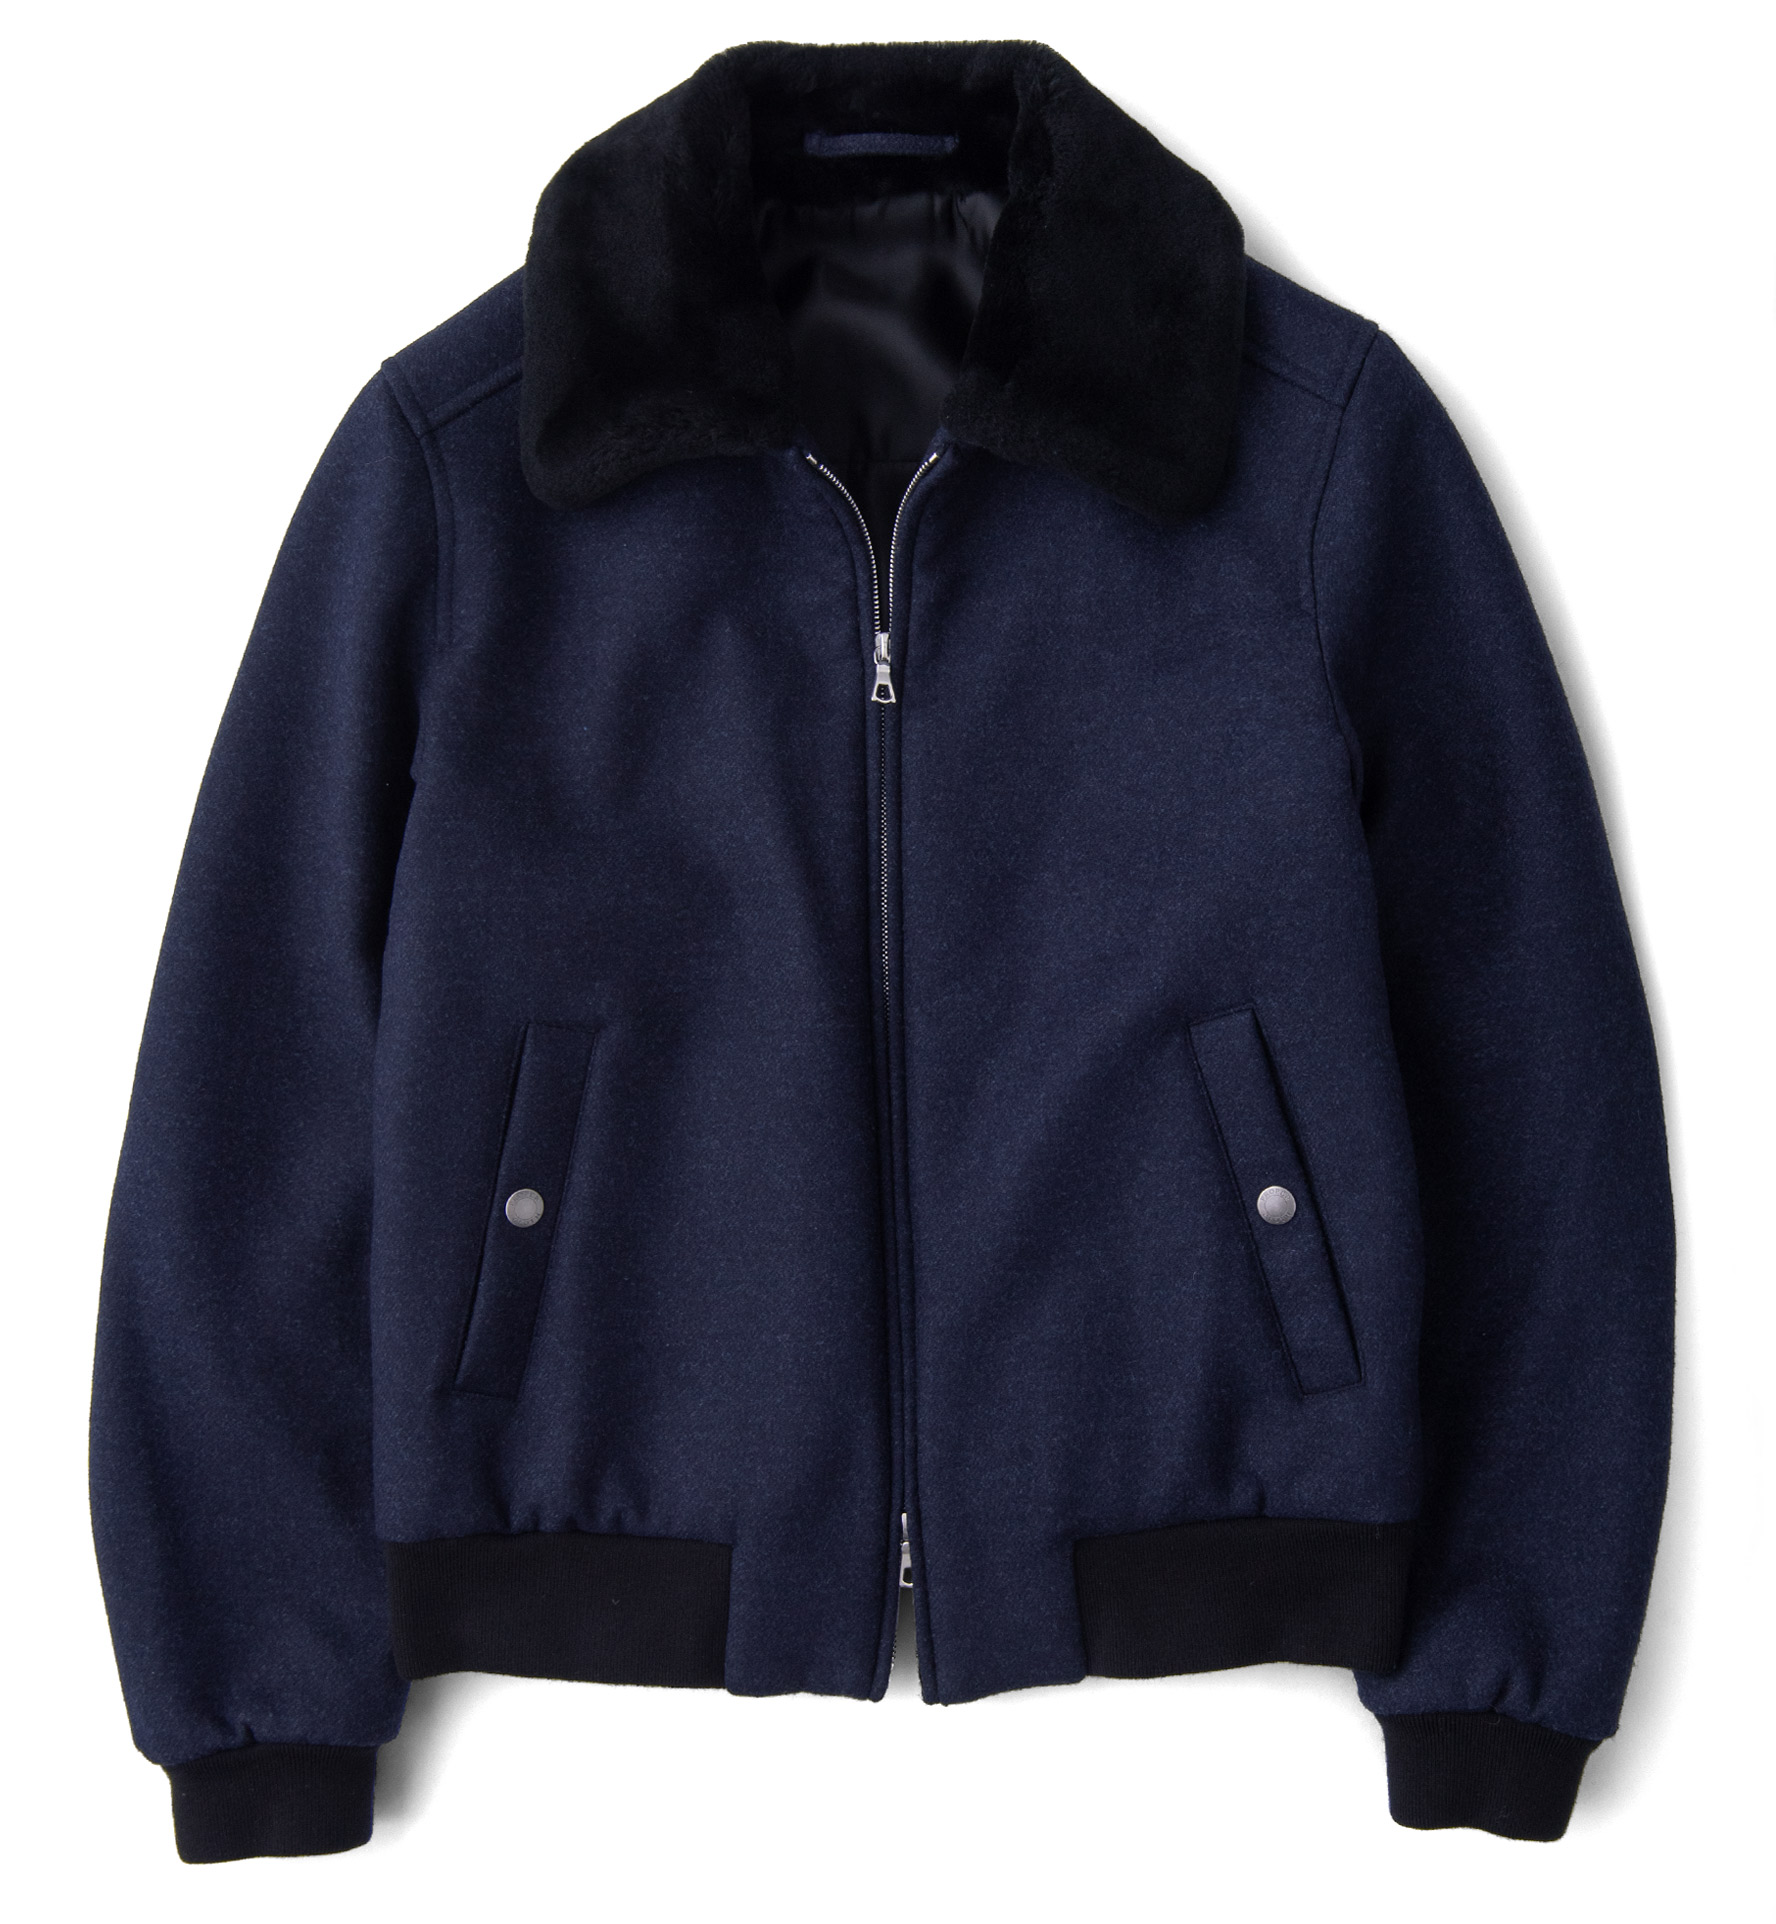 Zoom Image of Biella Navy Wool Shearling Collar Flight Jacket